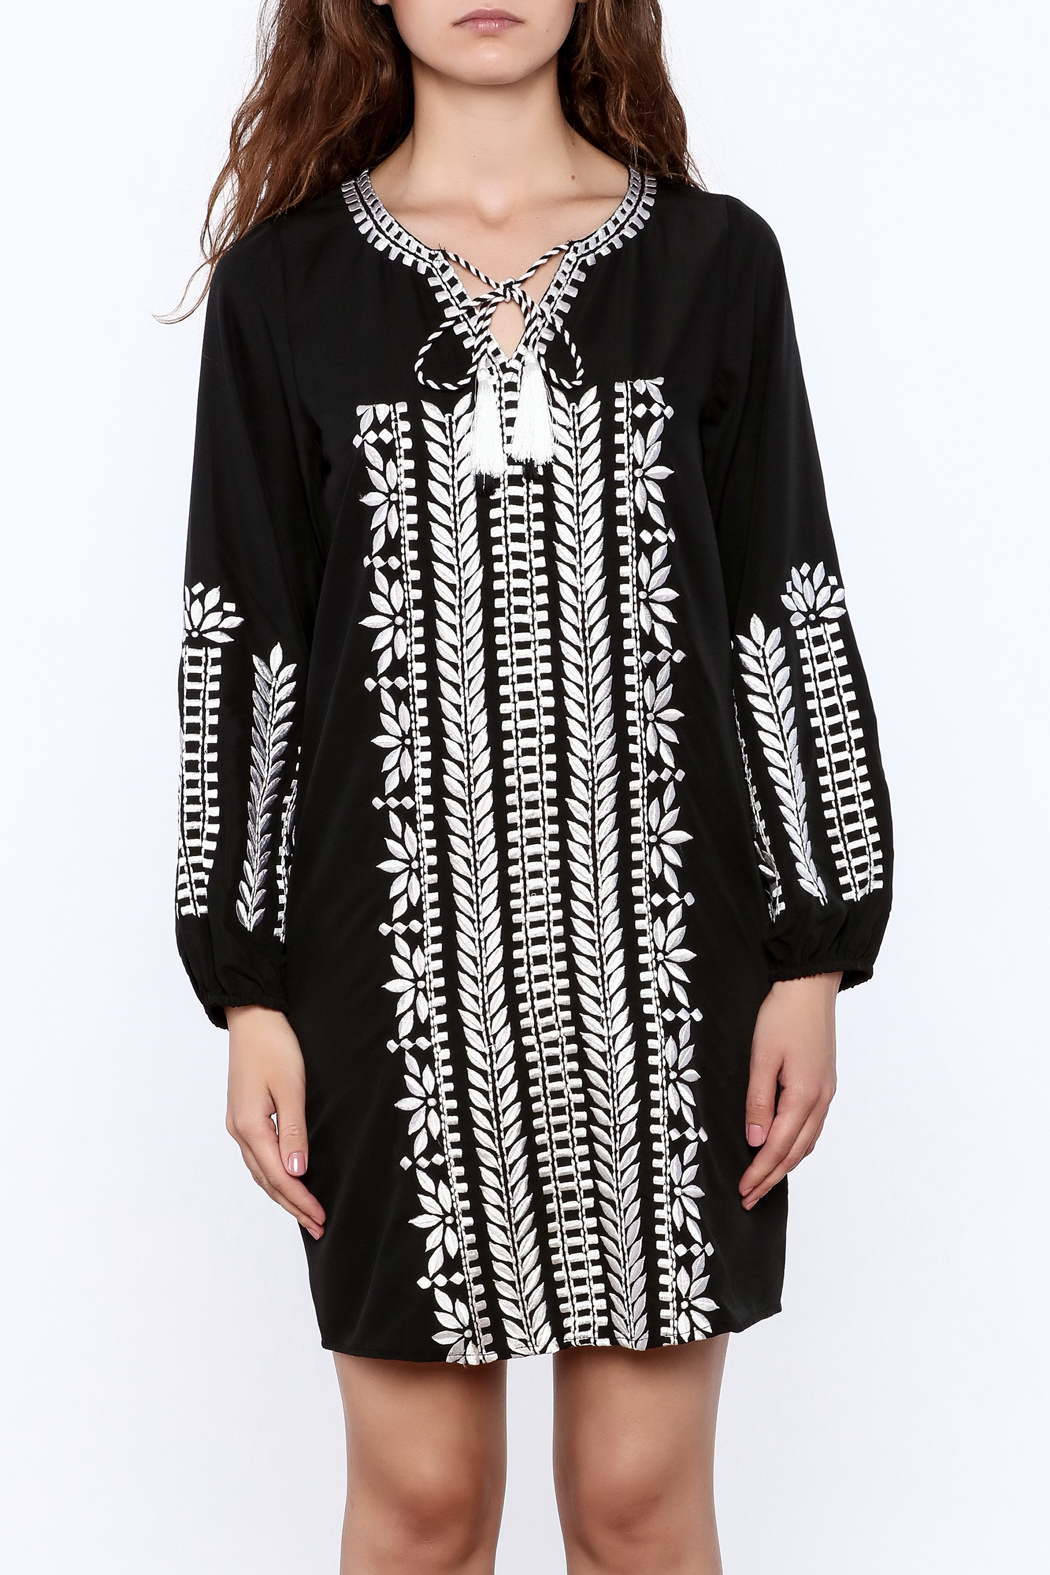 KAS New York Trudy Embroidered Dress - Side Cropped Image